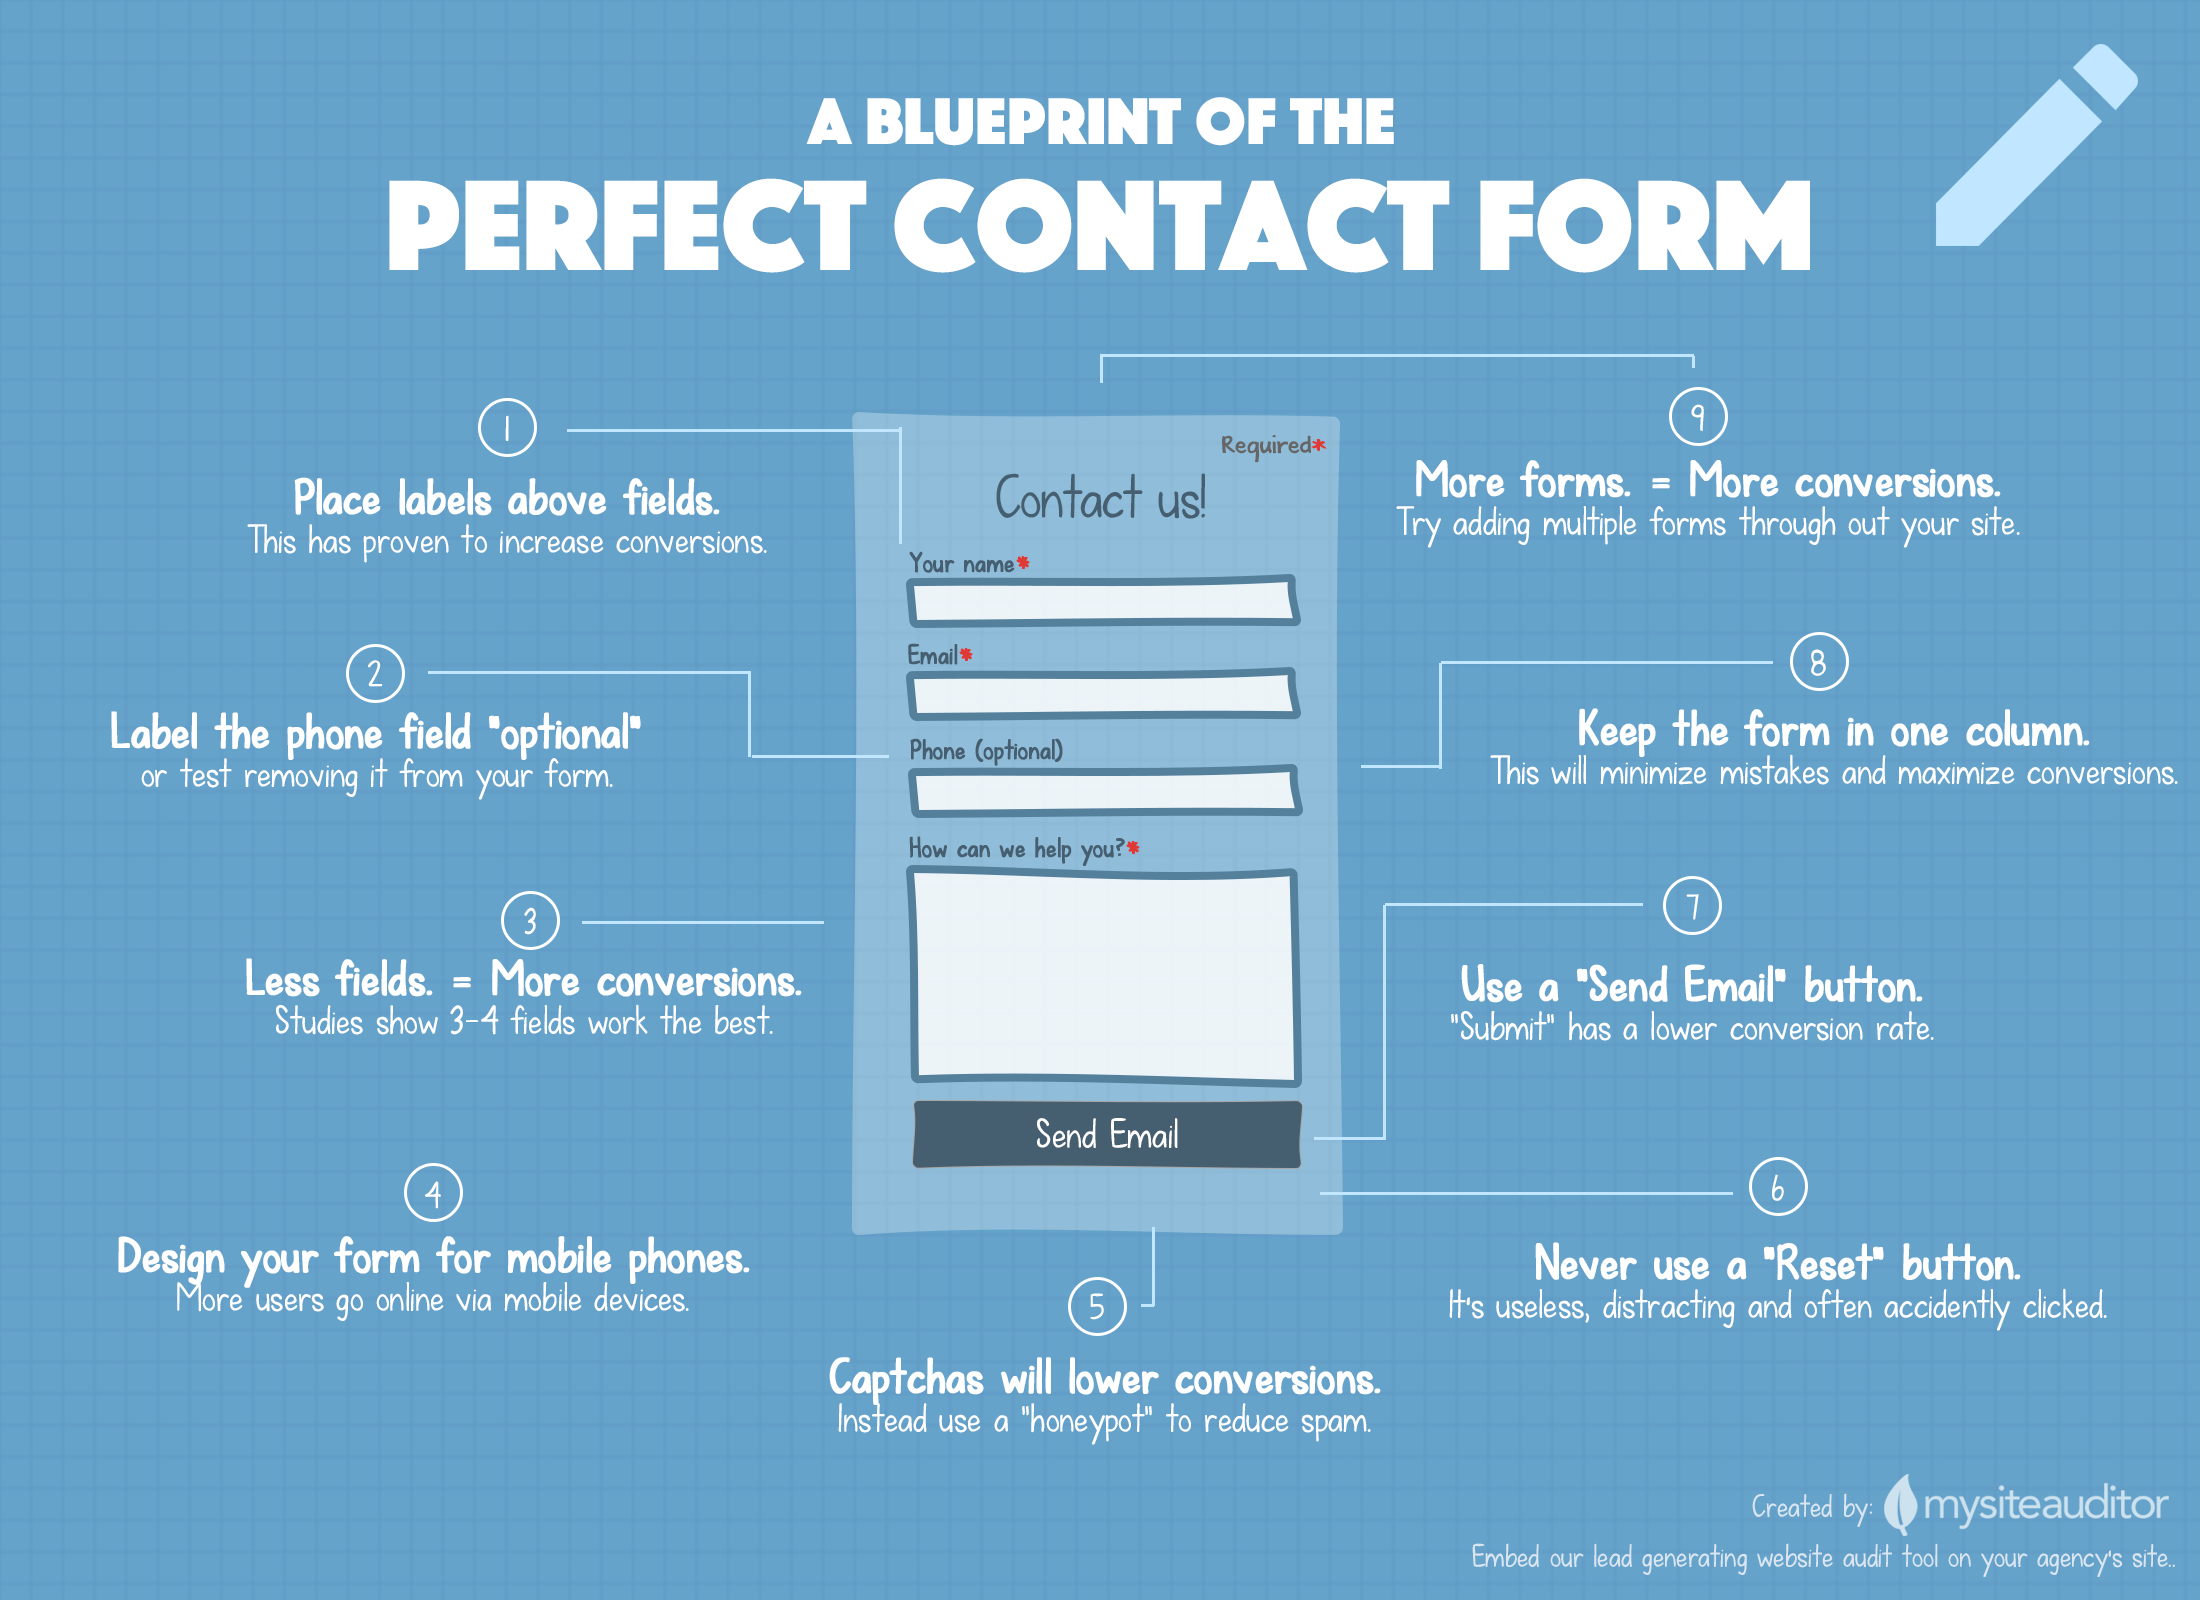 A blueprint of the perfect contact form infographic contact form infographic malvernweather Choice Image